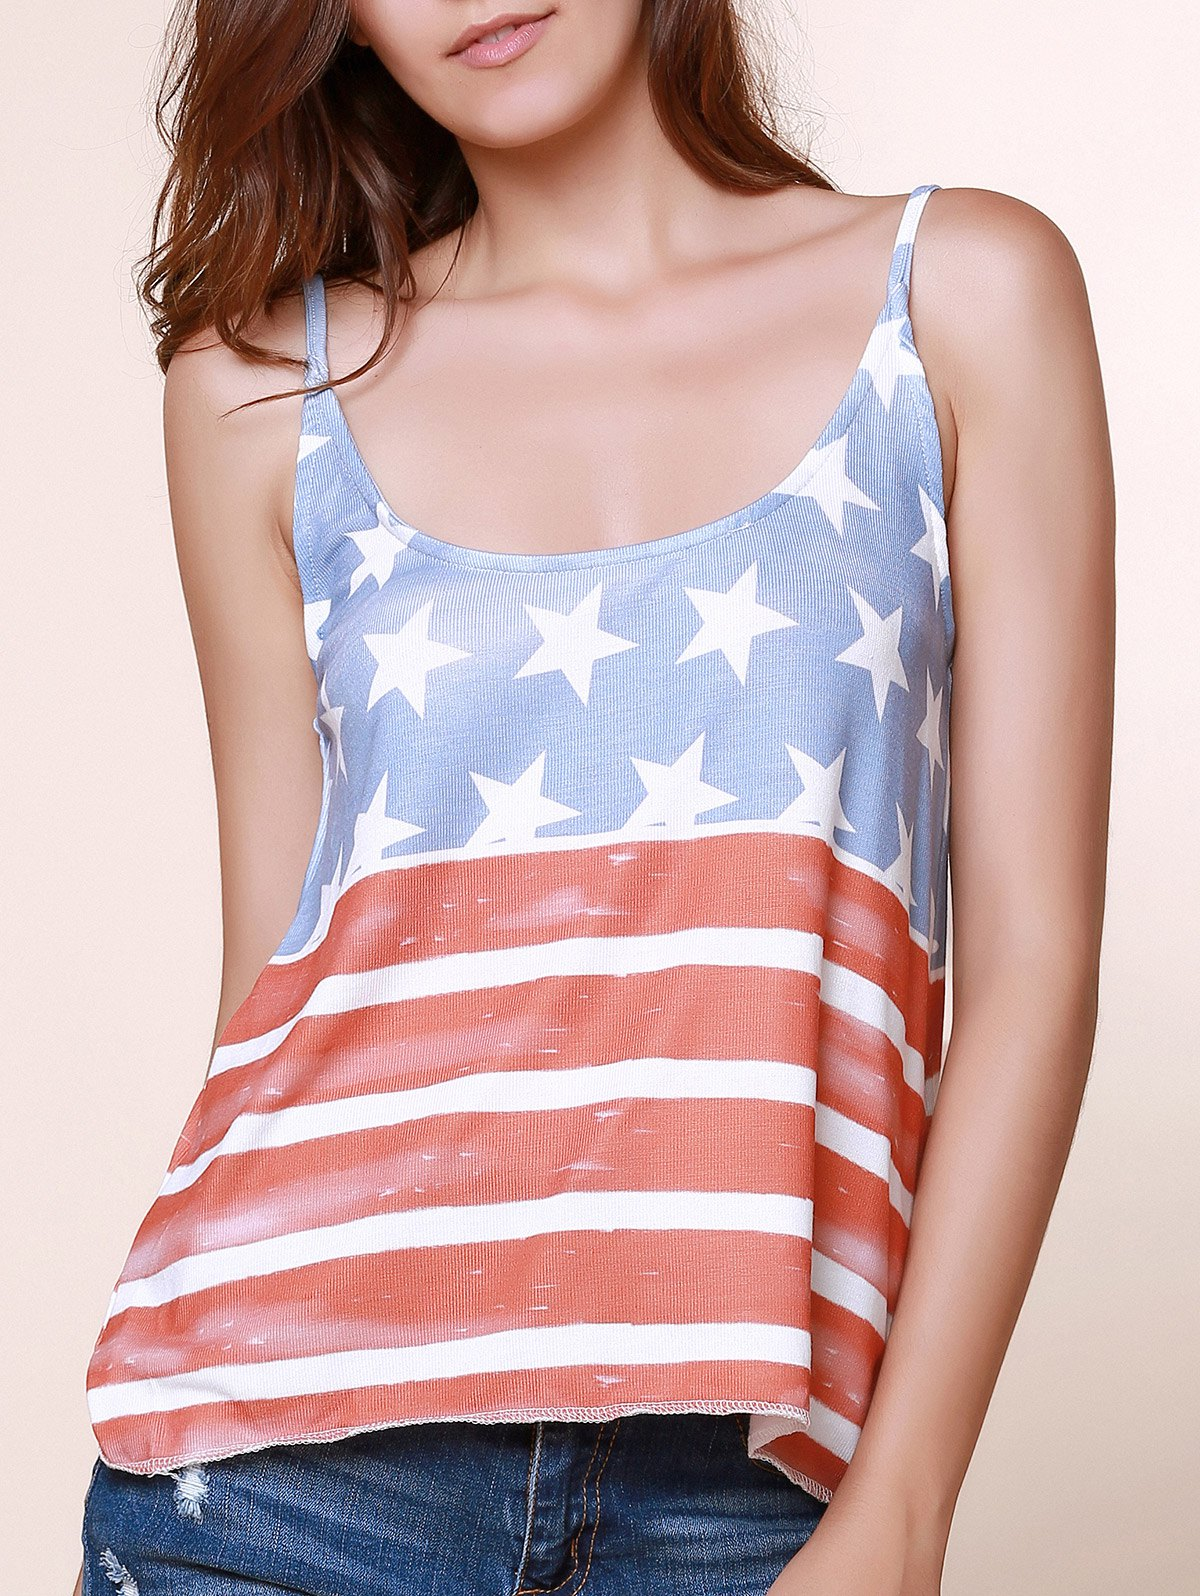 Stylish Spaghetti Straps American Flag Print Women's Tops - BLUE/RED S